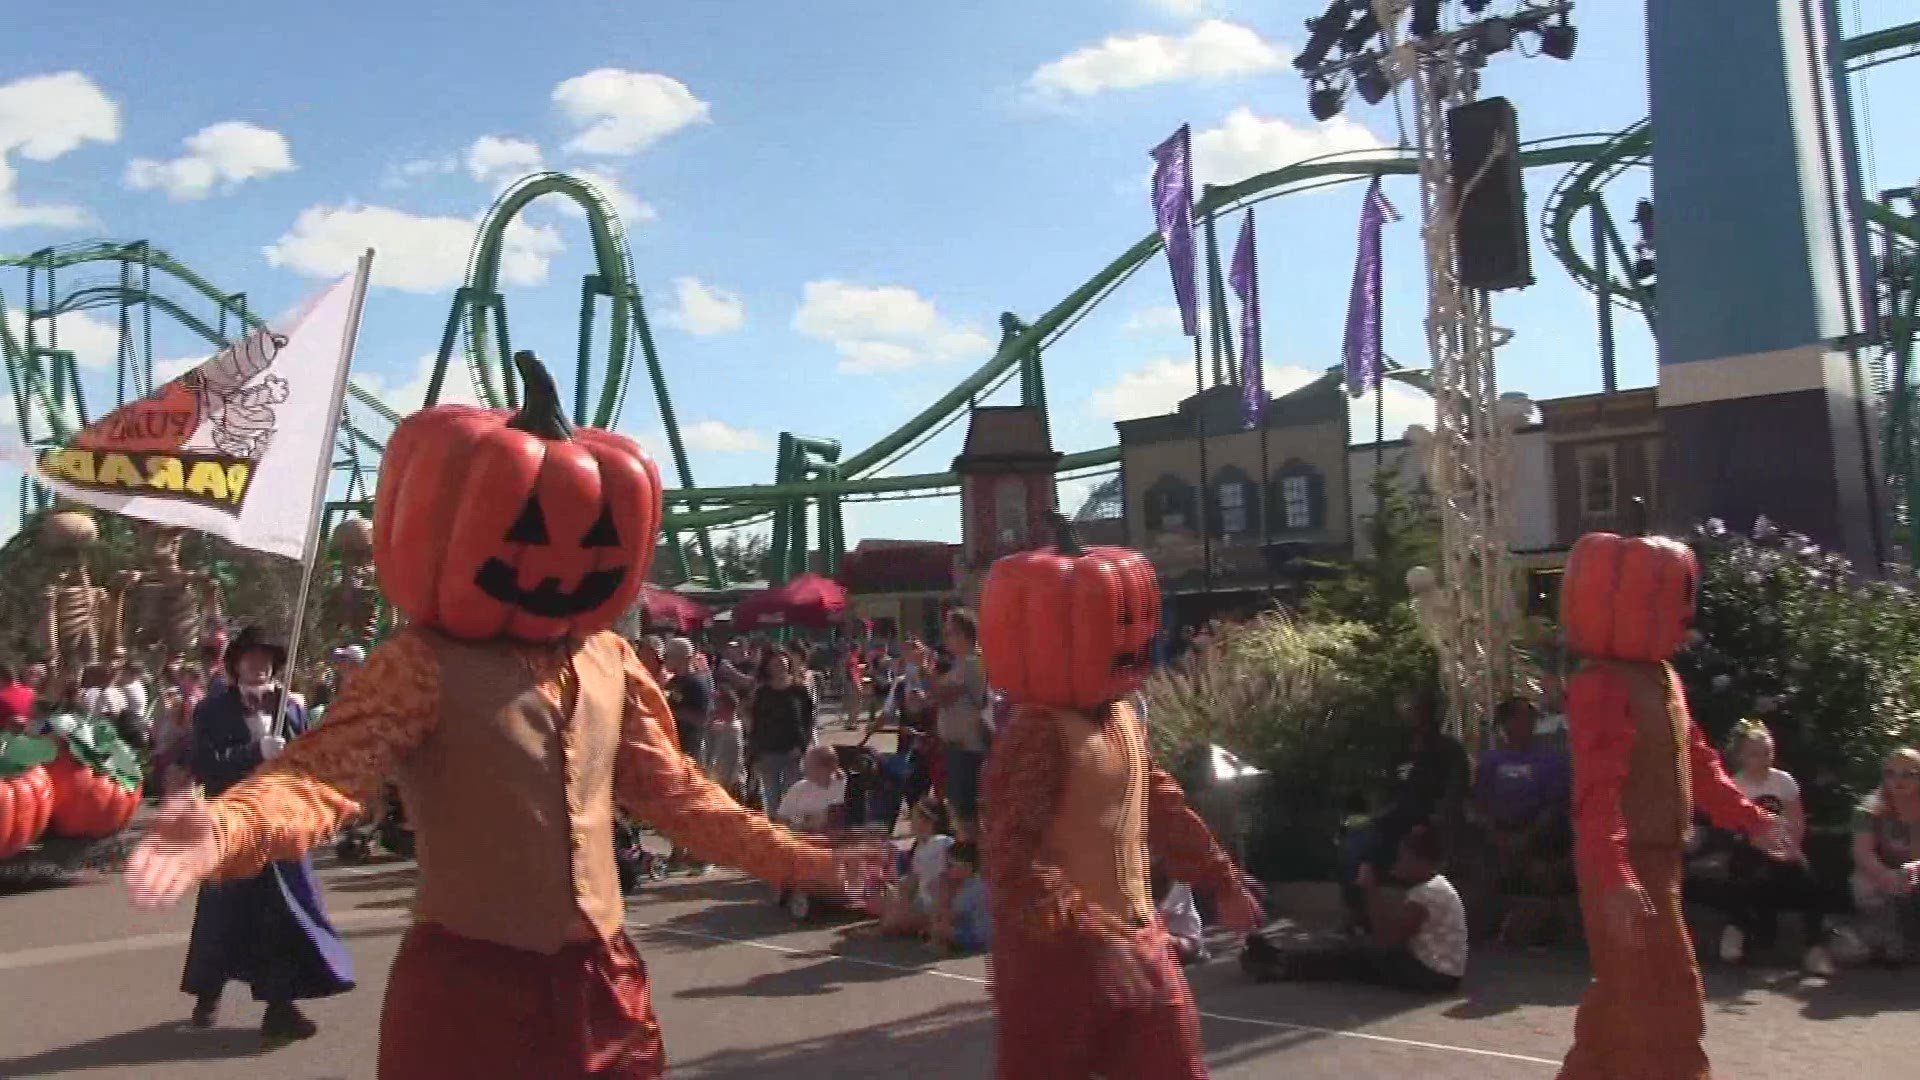 Halloween Events For Kids In Cleveland 2020 What is replacing HalloWeekends at Cedar Point? New event planned